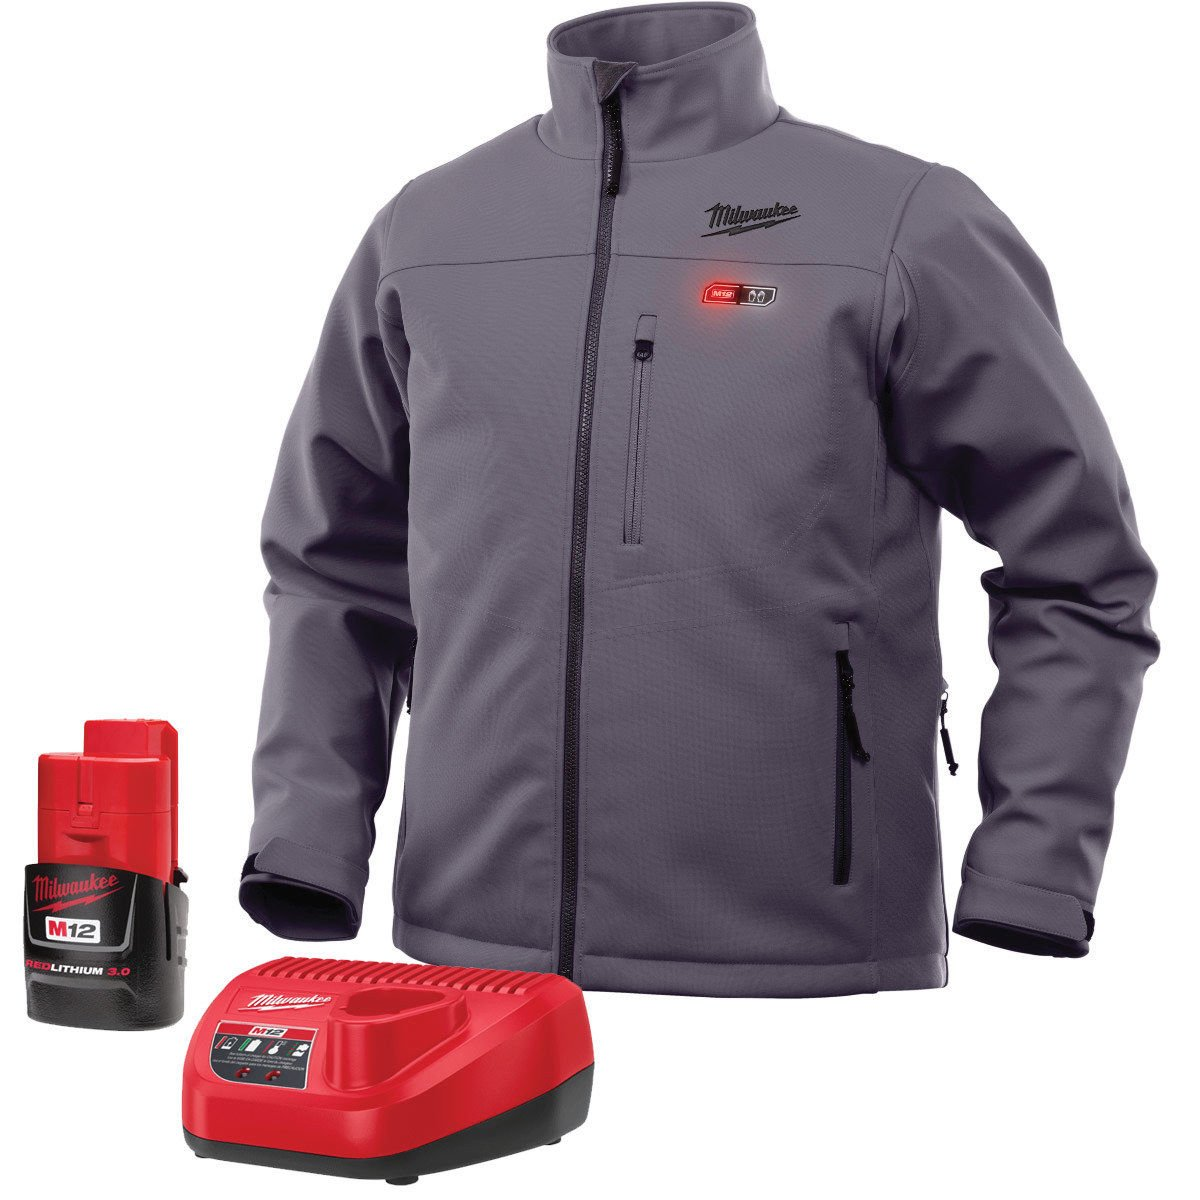 Milwaukee M12 Heated Jacket Kit - Battery and Charger Included (XL, Gray)